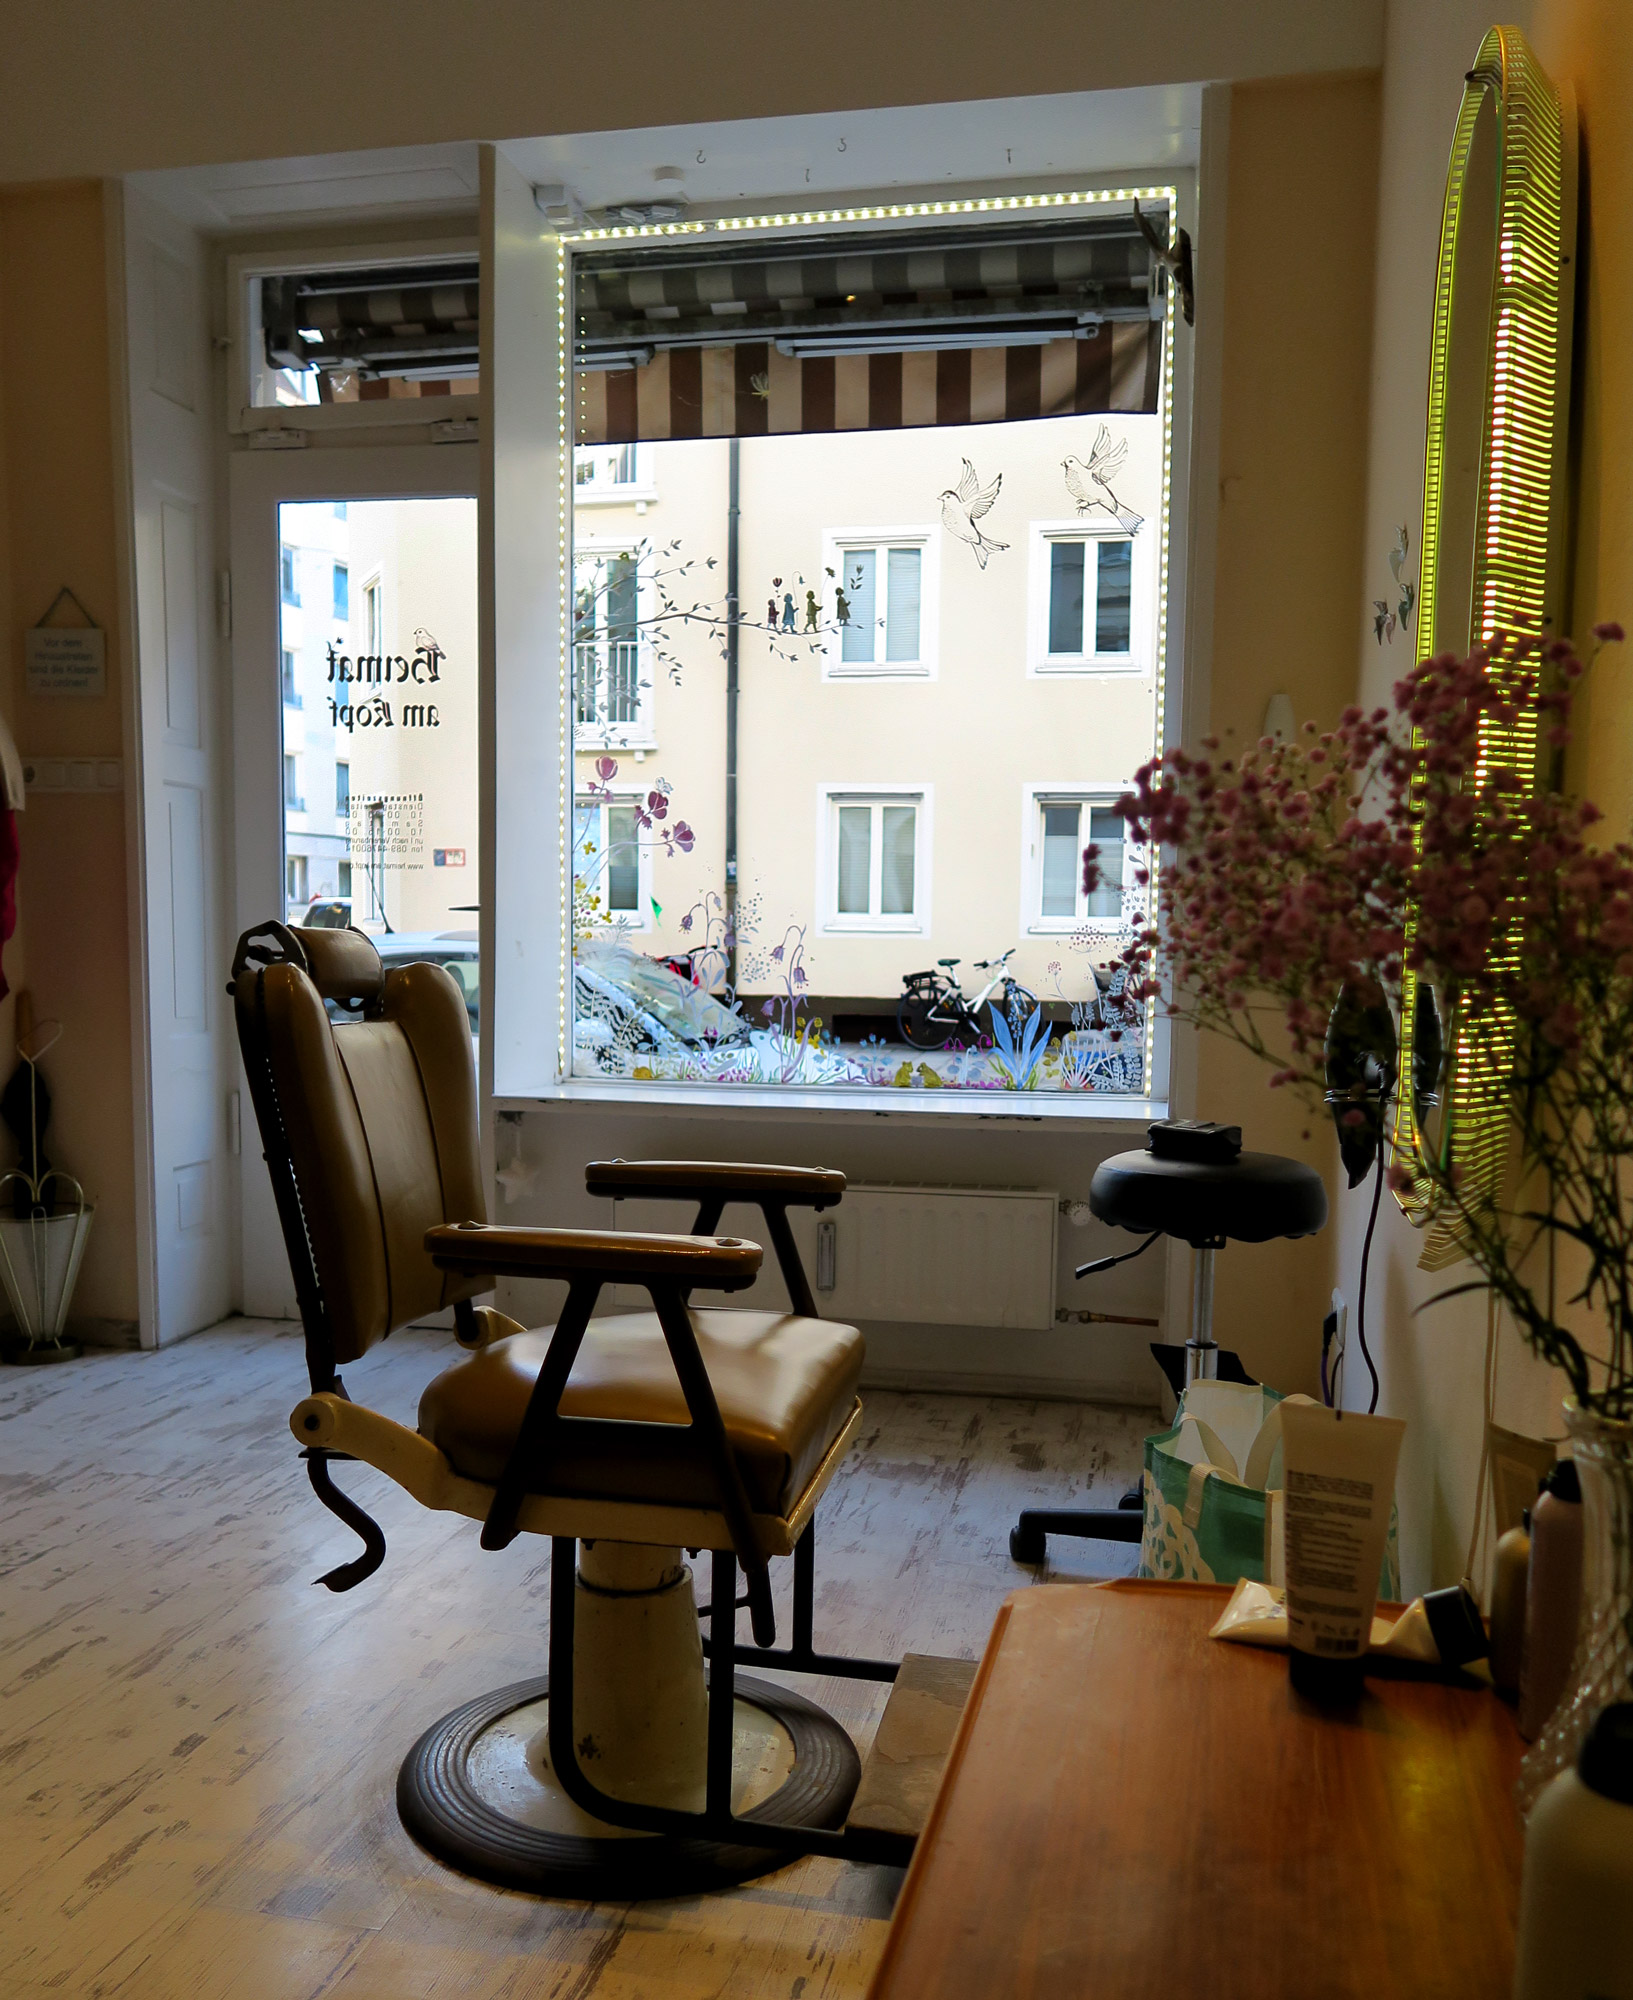 heimat-am-kopf-window-salon.jpg